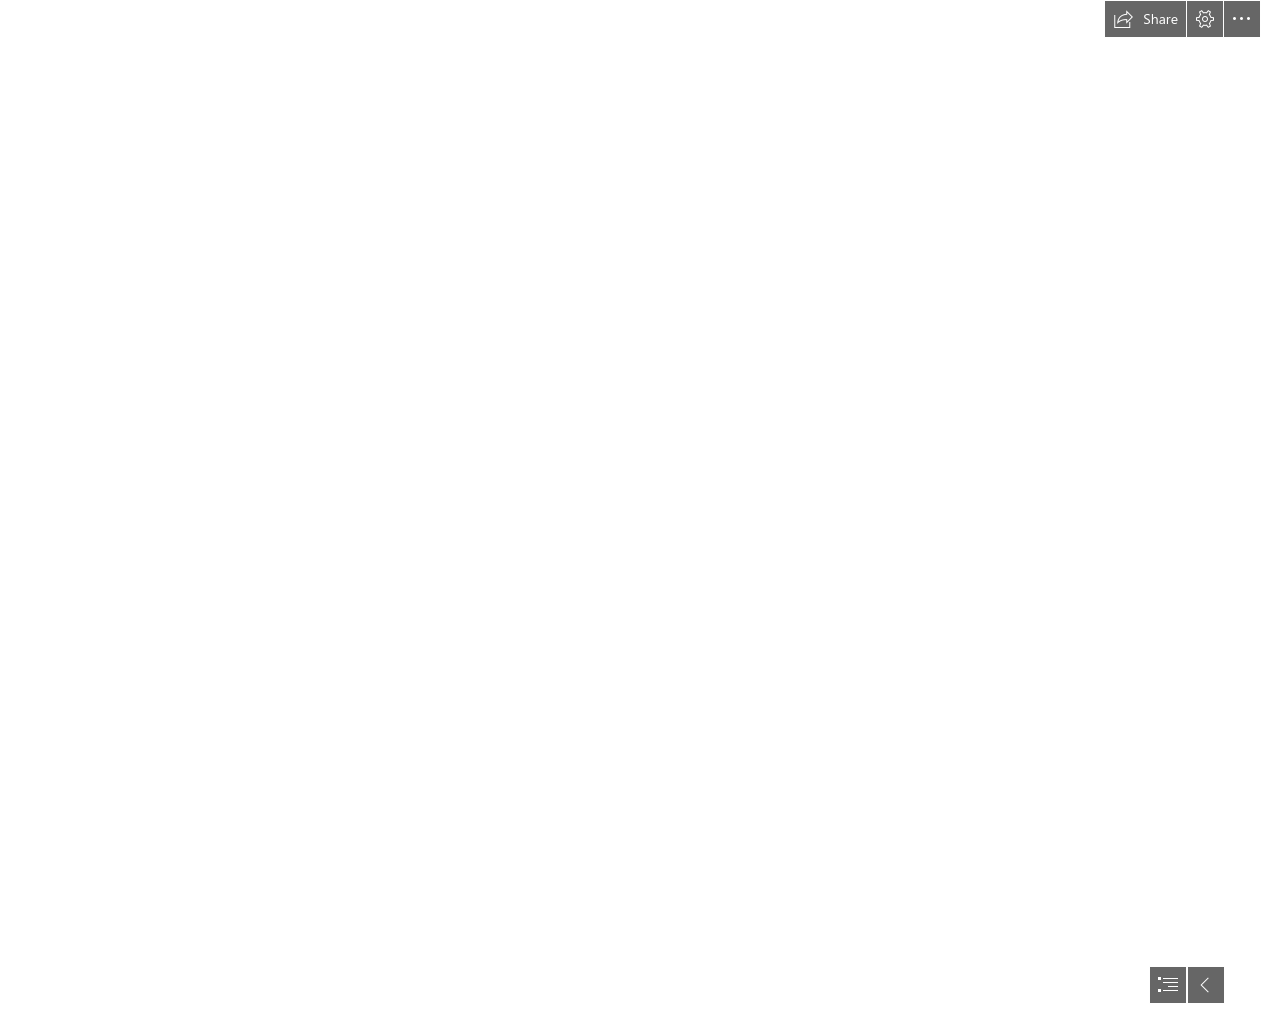 Weekly Update Mon 31st May 2021